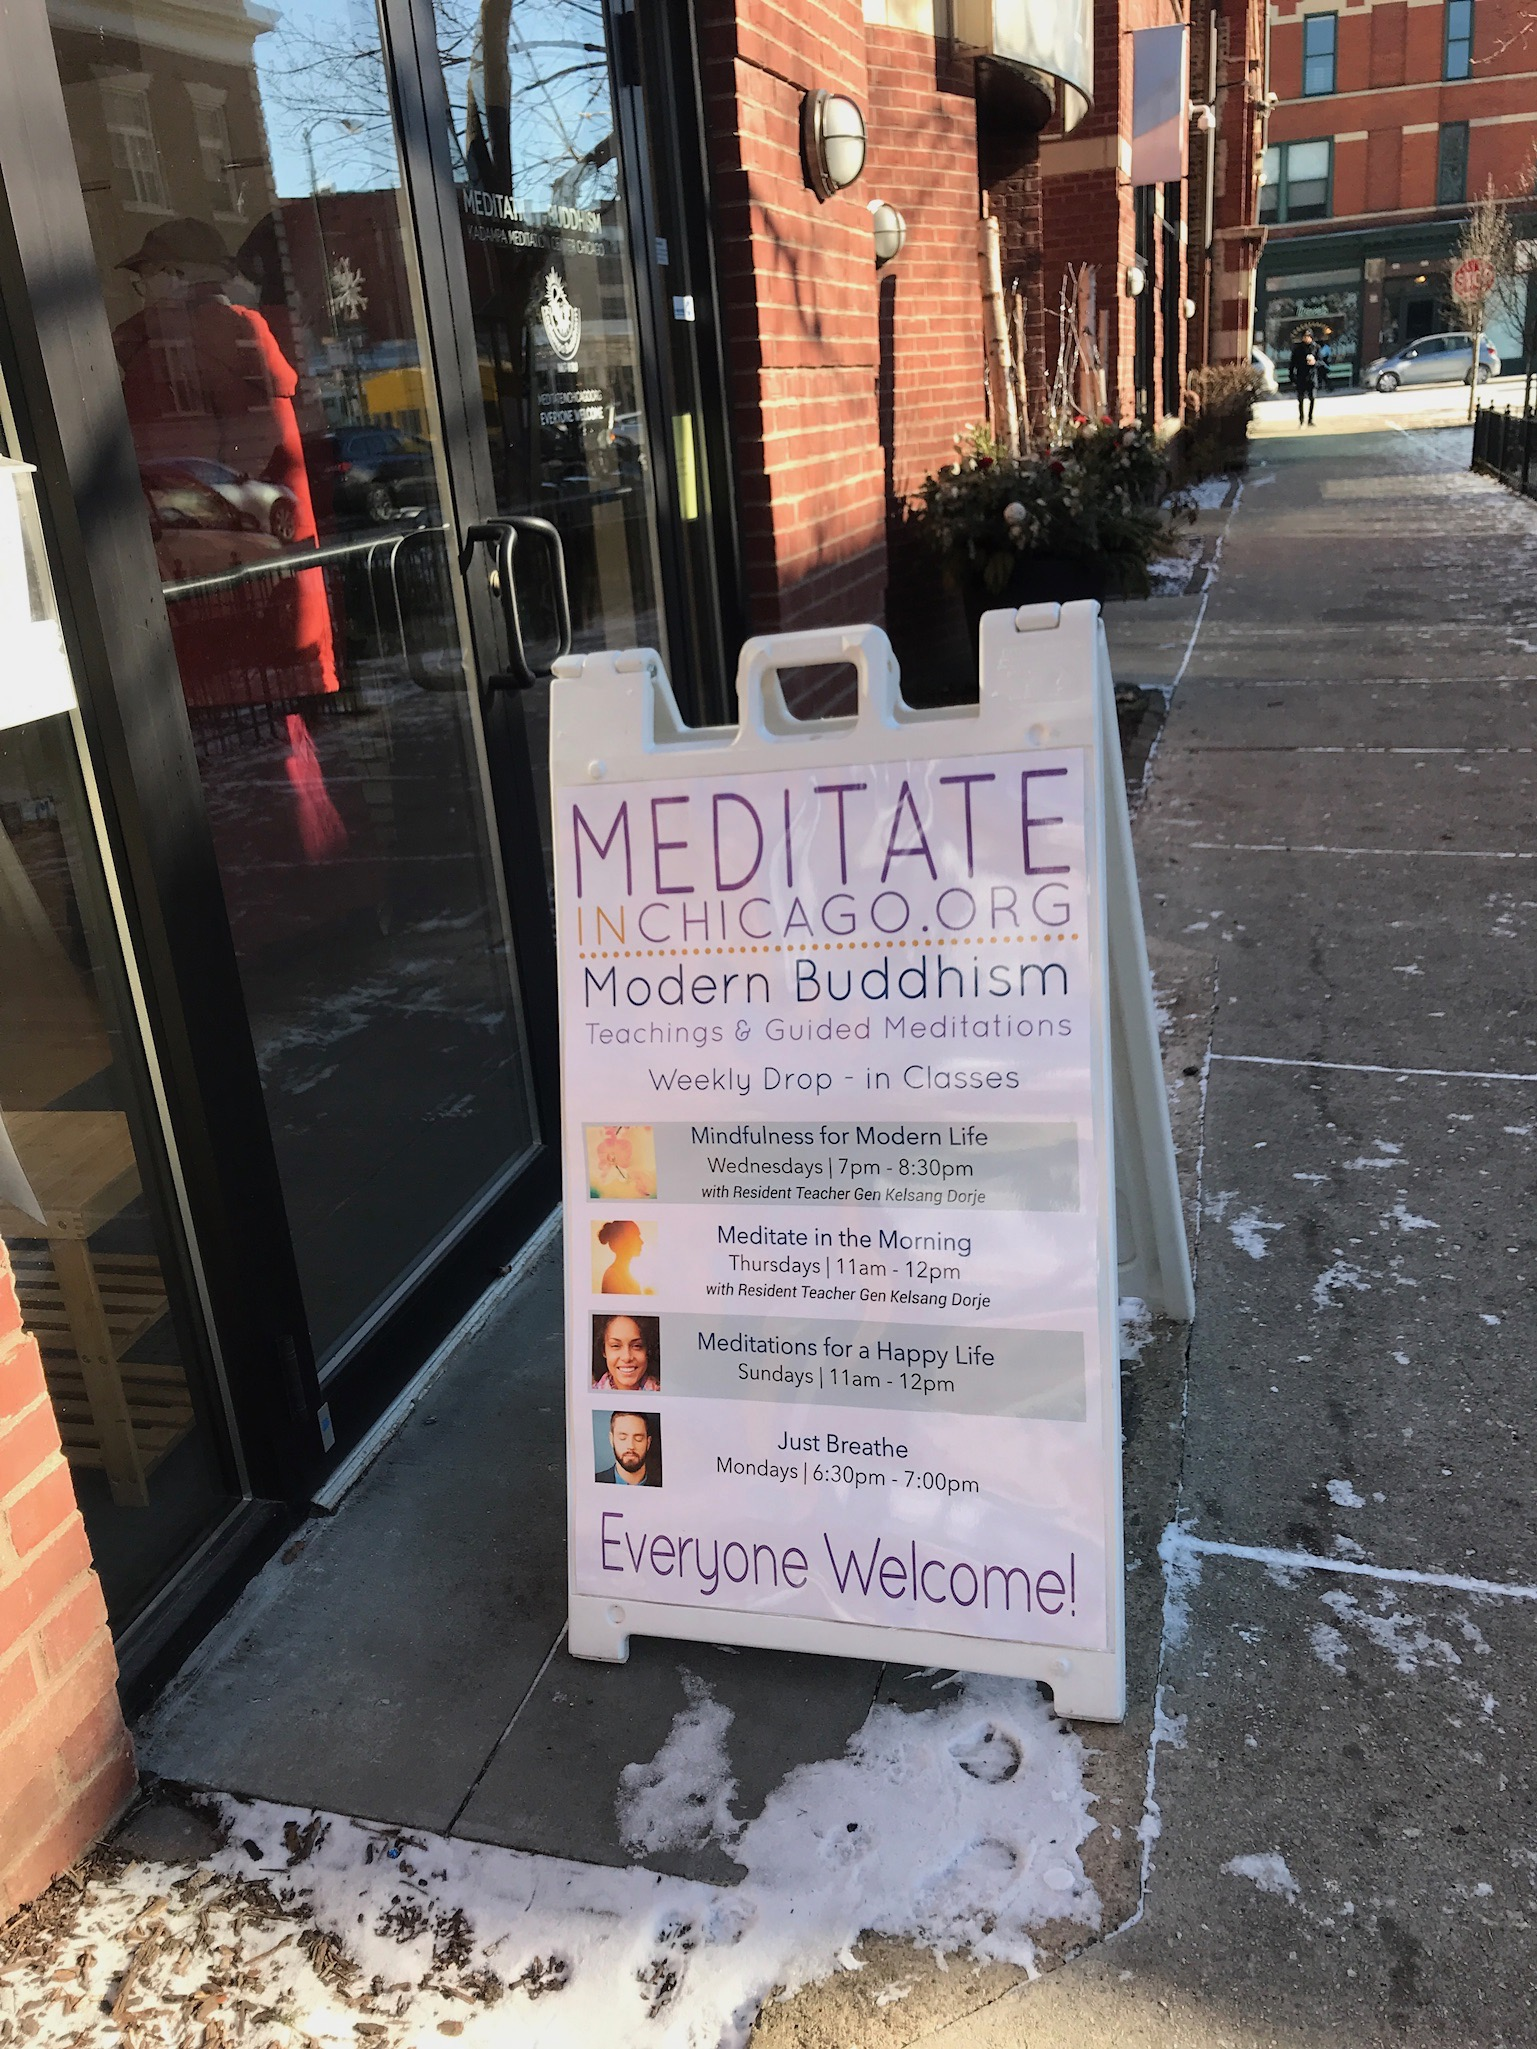 Kadampa Meditation Center in Wicker Park, Chicago, IL